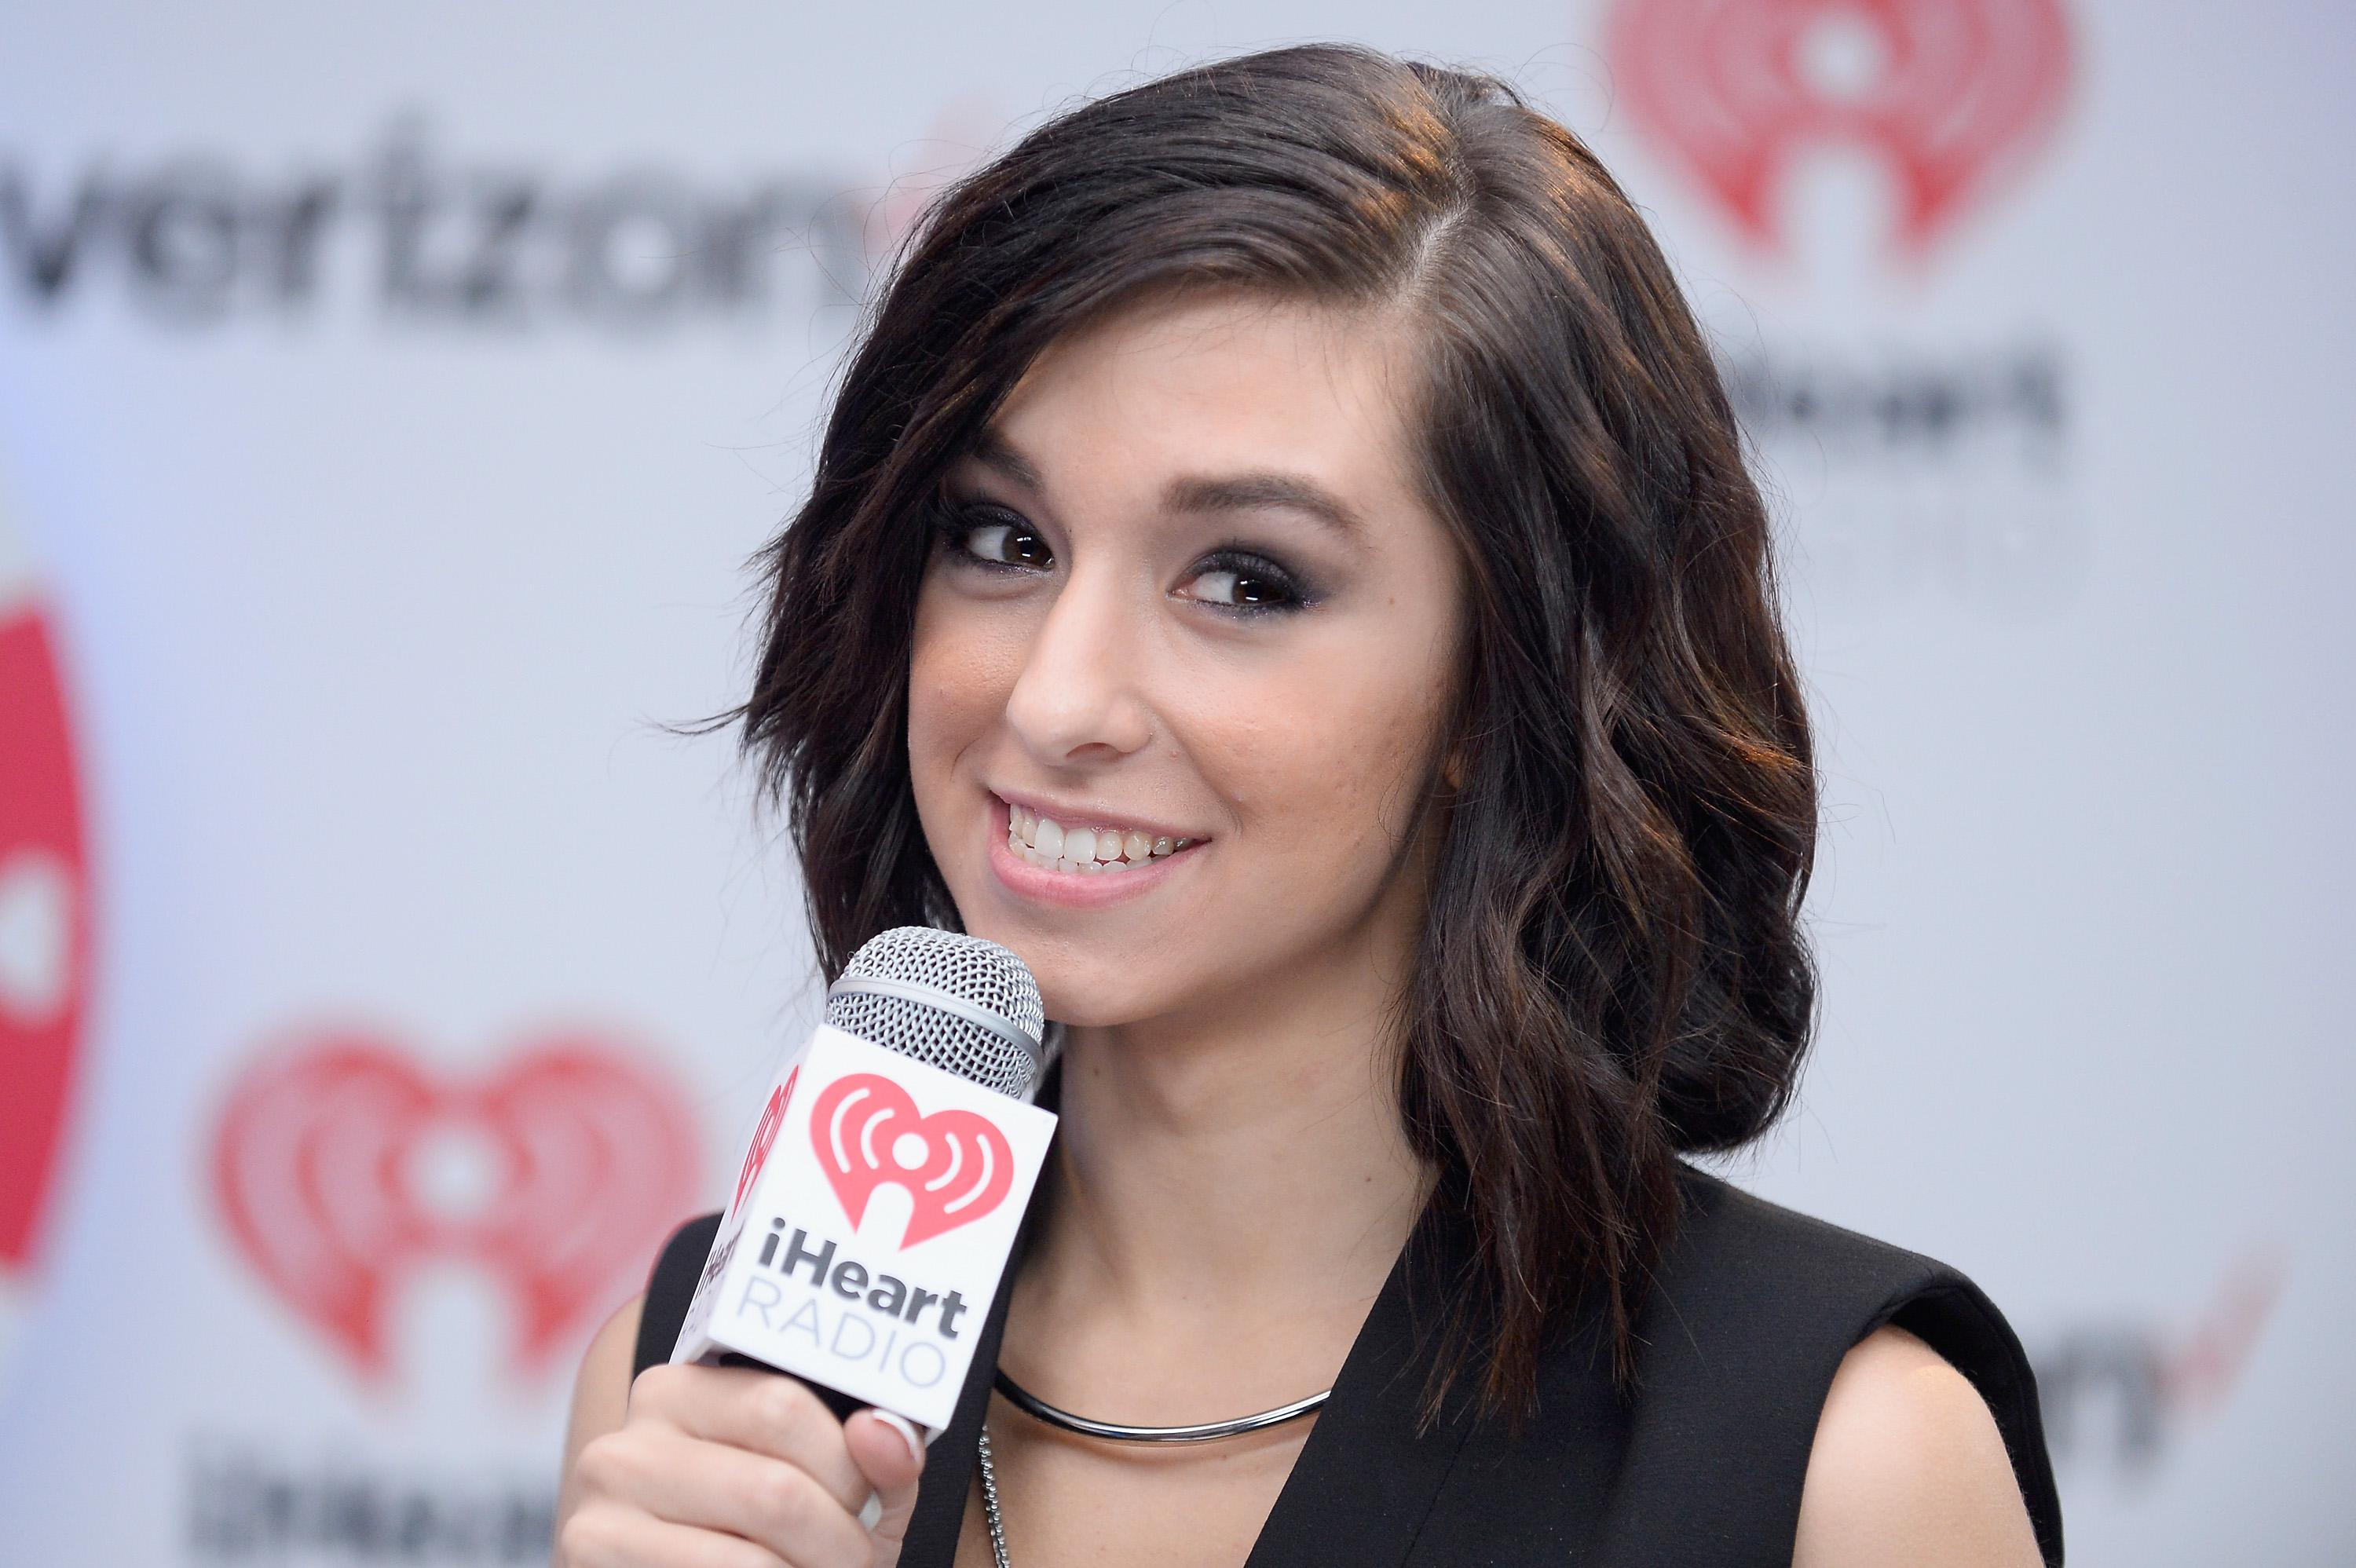 Christina Grimmie's New Music Video Released Two Months After Her Death